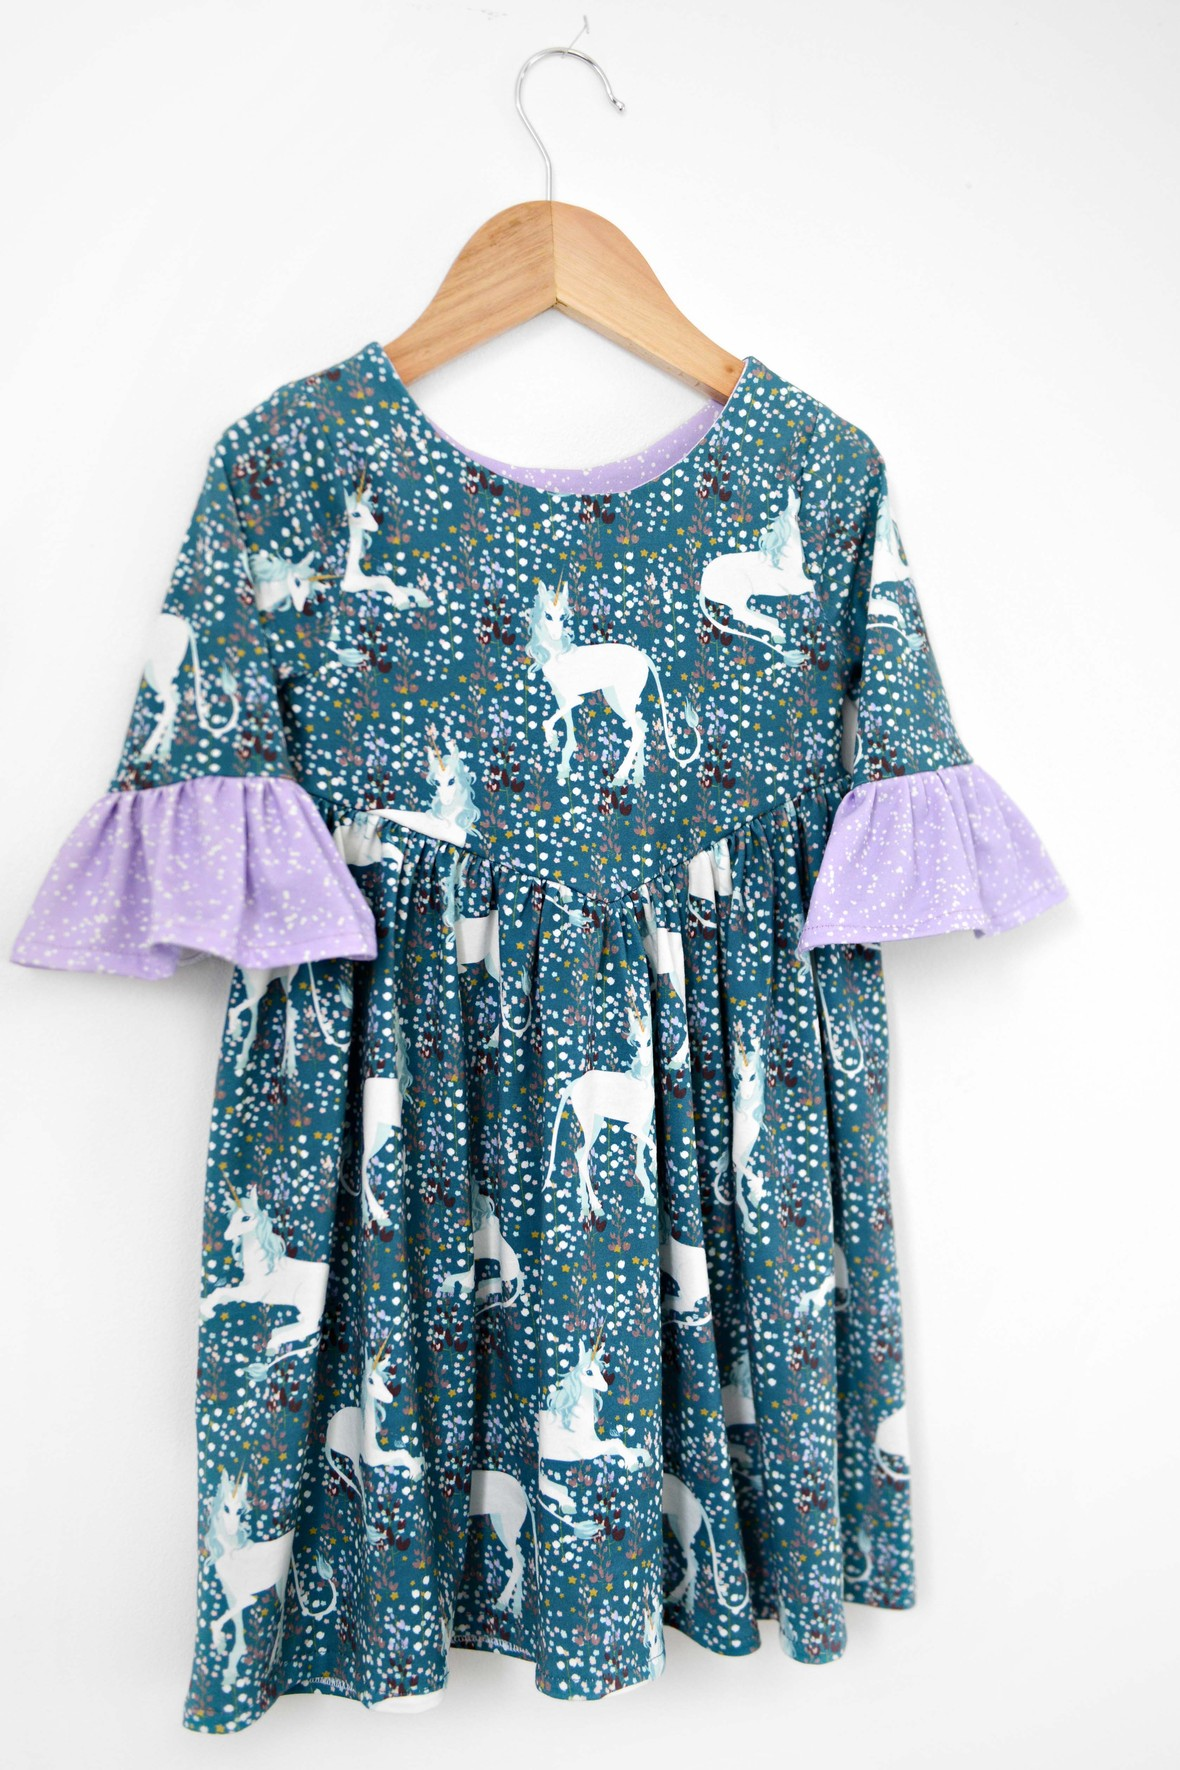 Painted Unicorn Fabric Jersey Girls Dress Hawthorne Supply Co